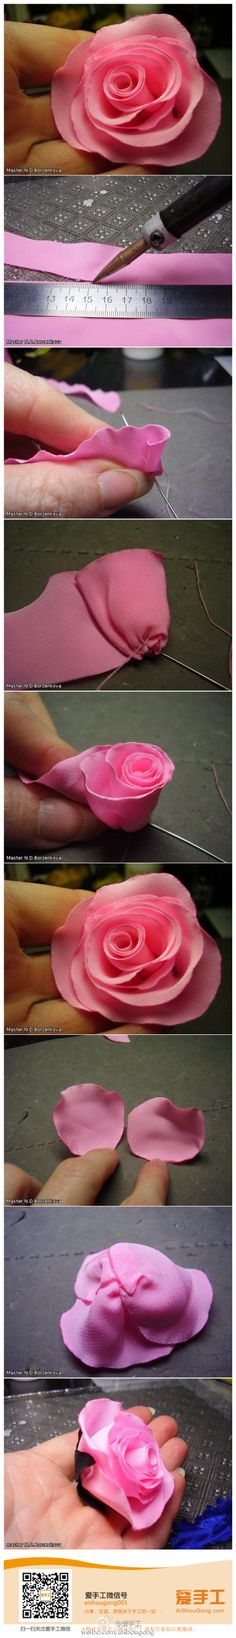 Handmade fabric rose.